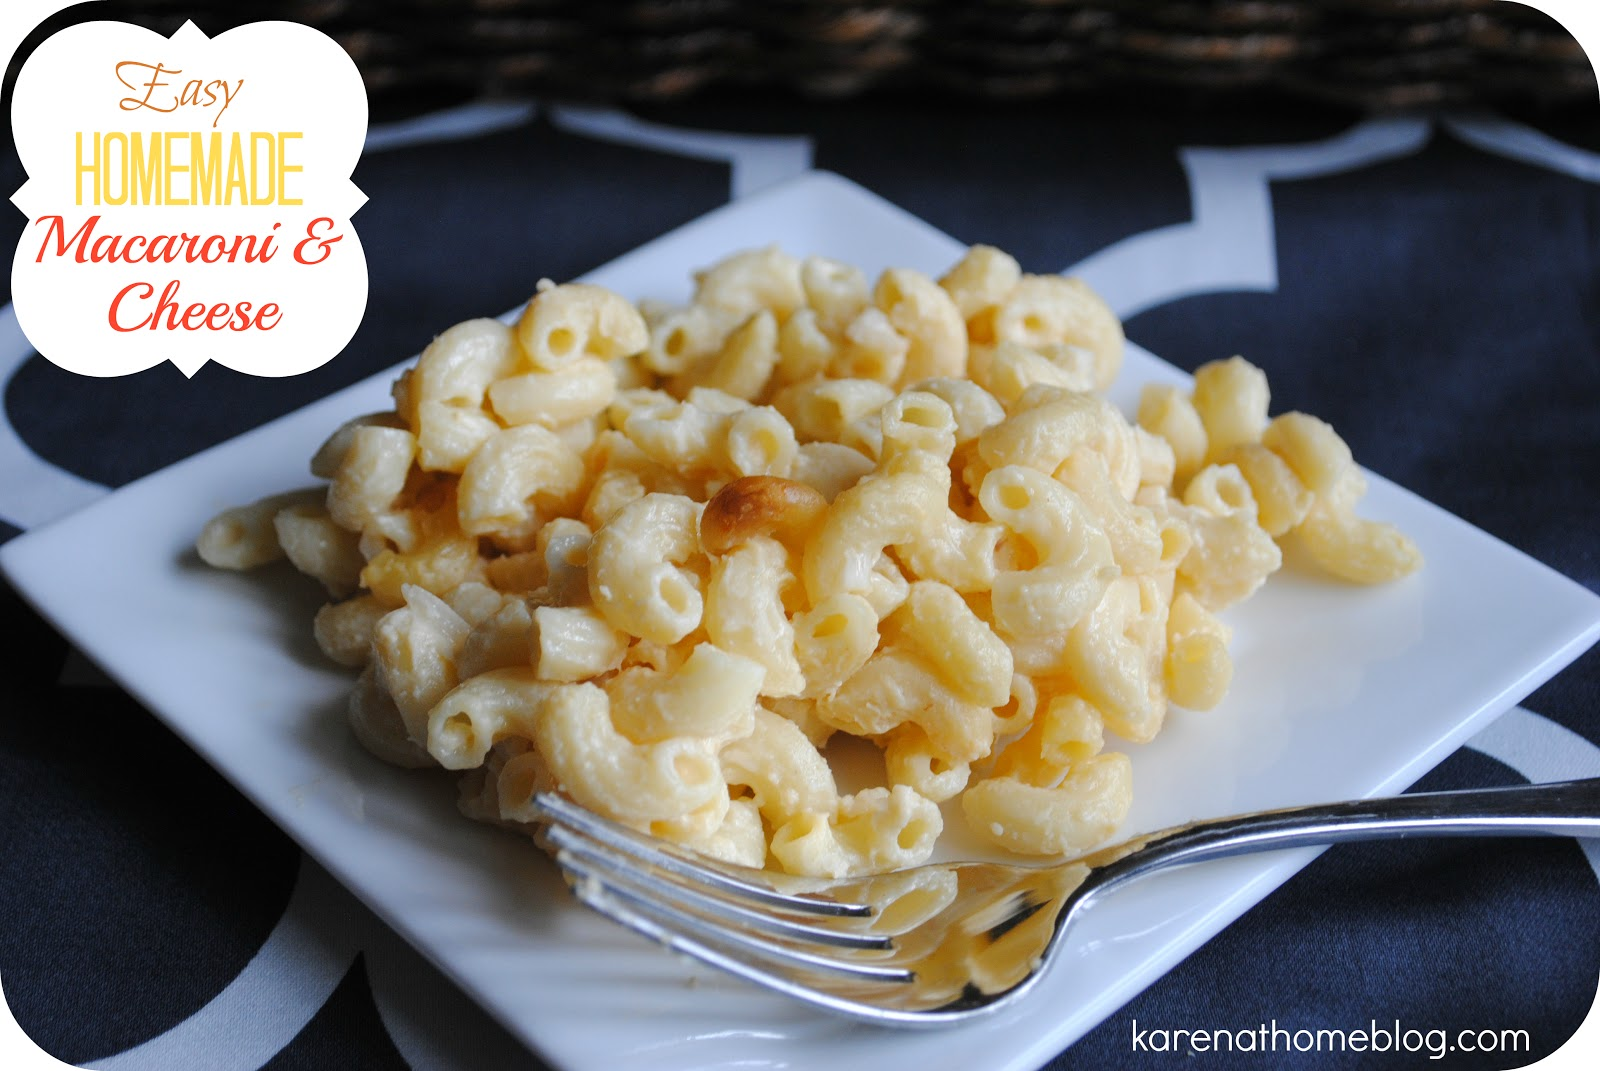 ... macaroni and cheese easy homemade doughnuts easy homemade macaroni and